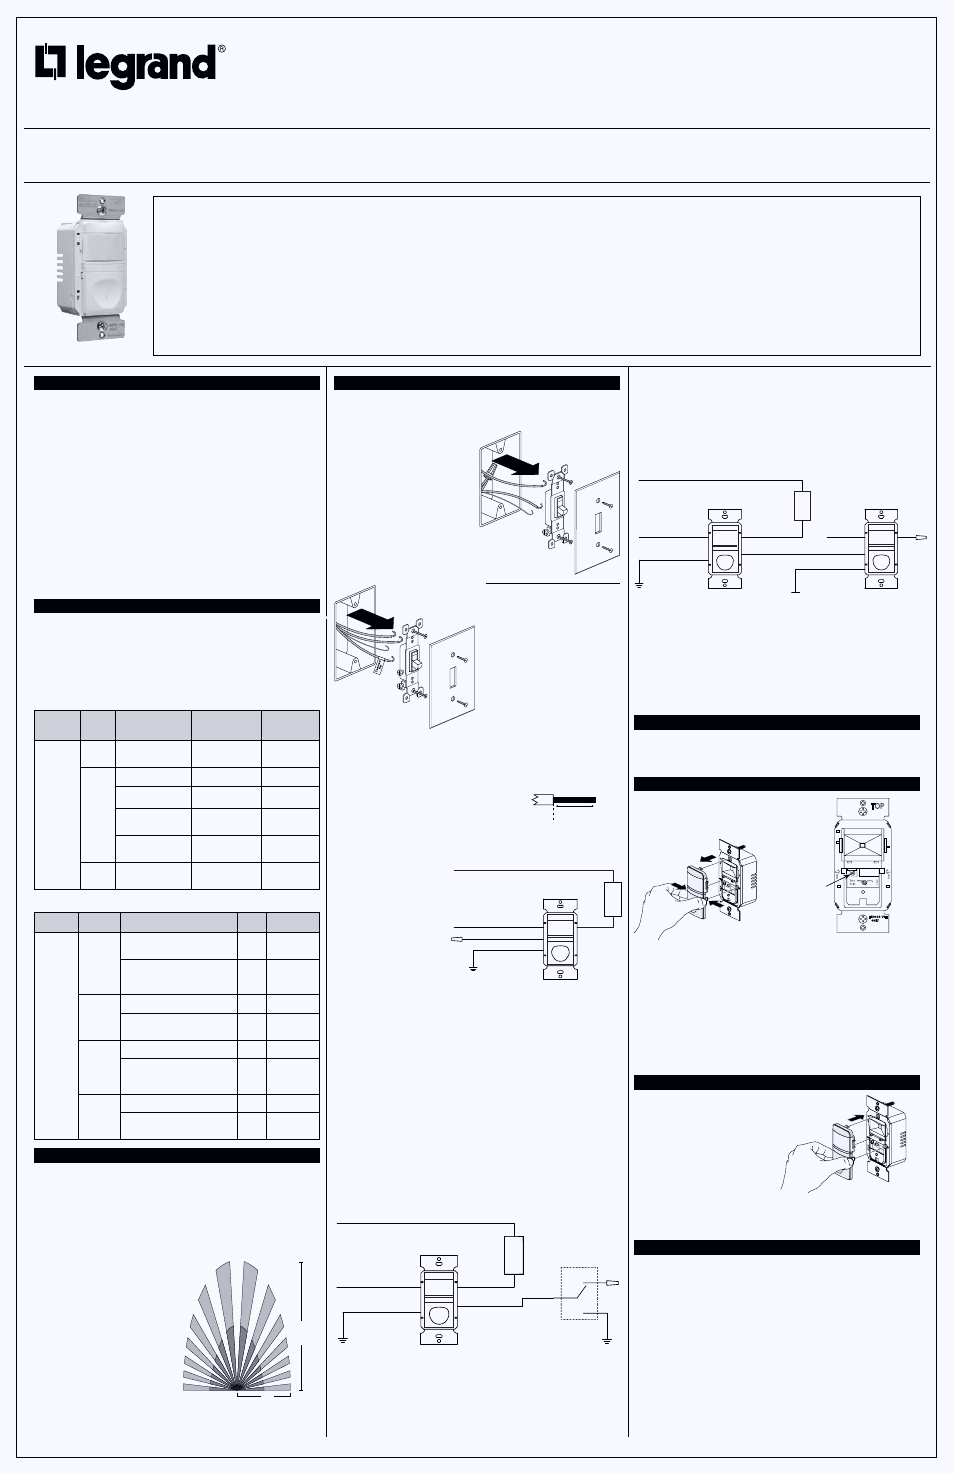 legrand single pole light switch wiring diagram for your needs